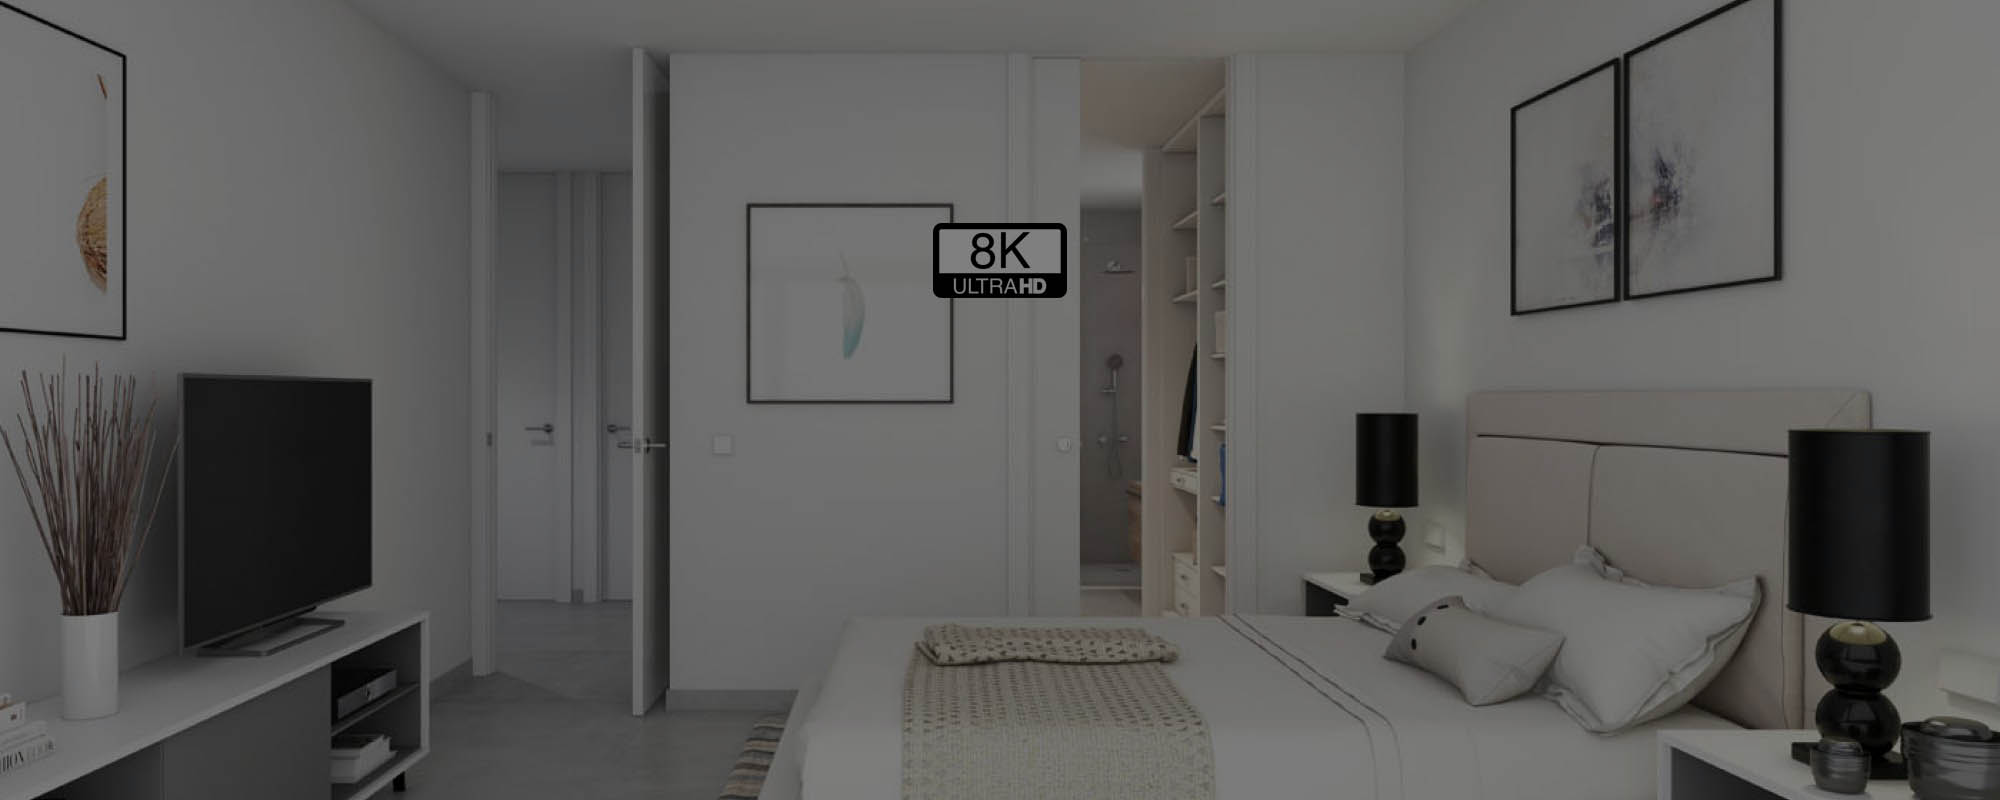 Renders 3D de interiores a resolución 8K Ultra HD